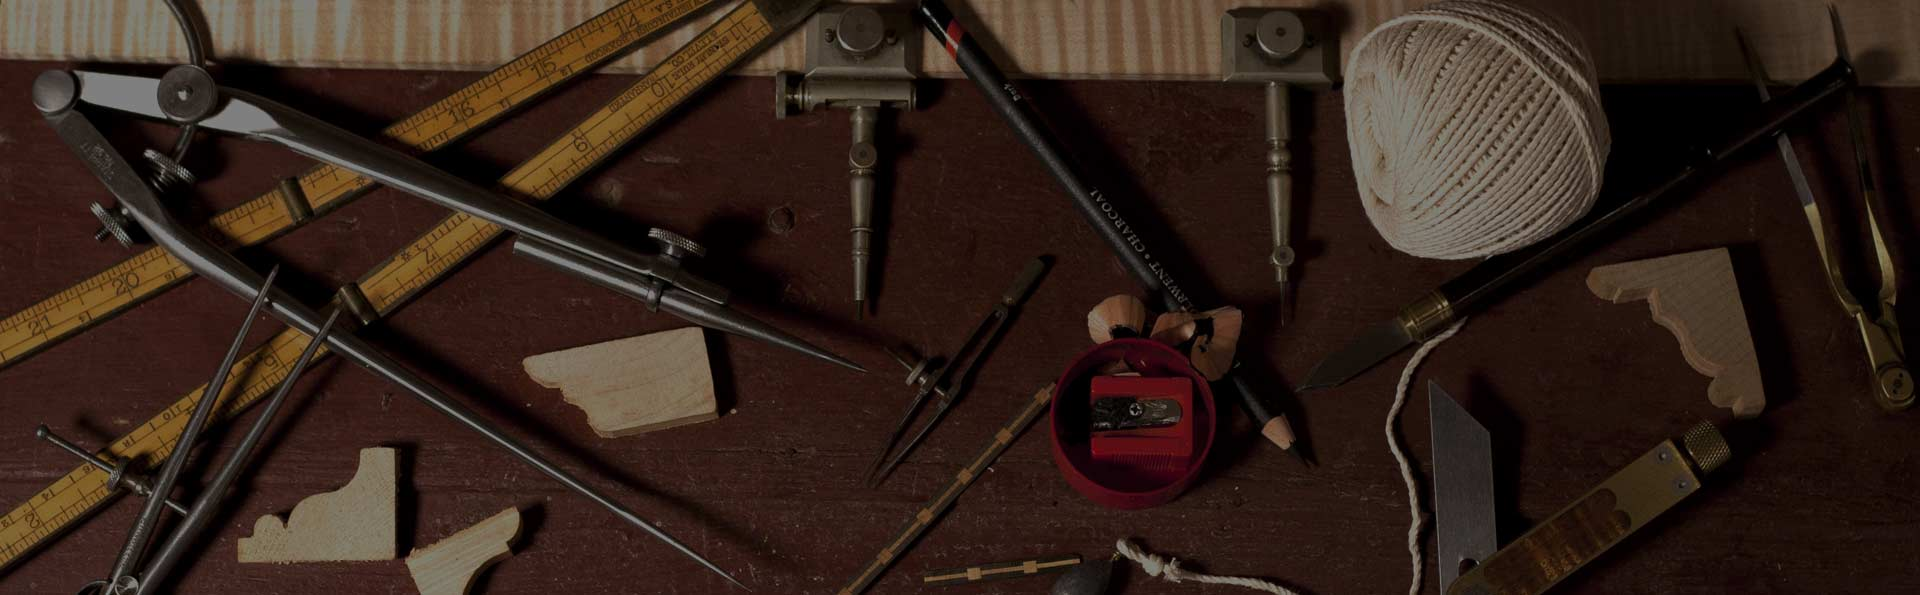 Proportional Measuring Tools on a Workbench